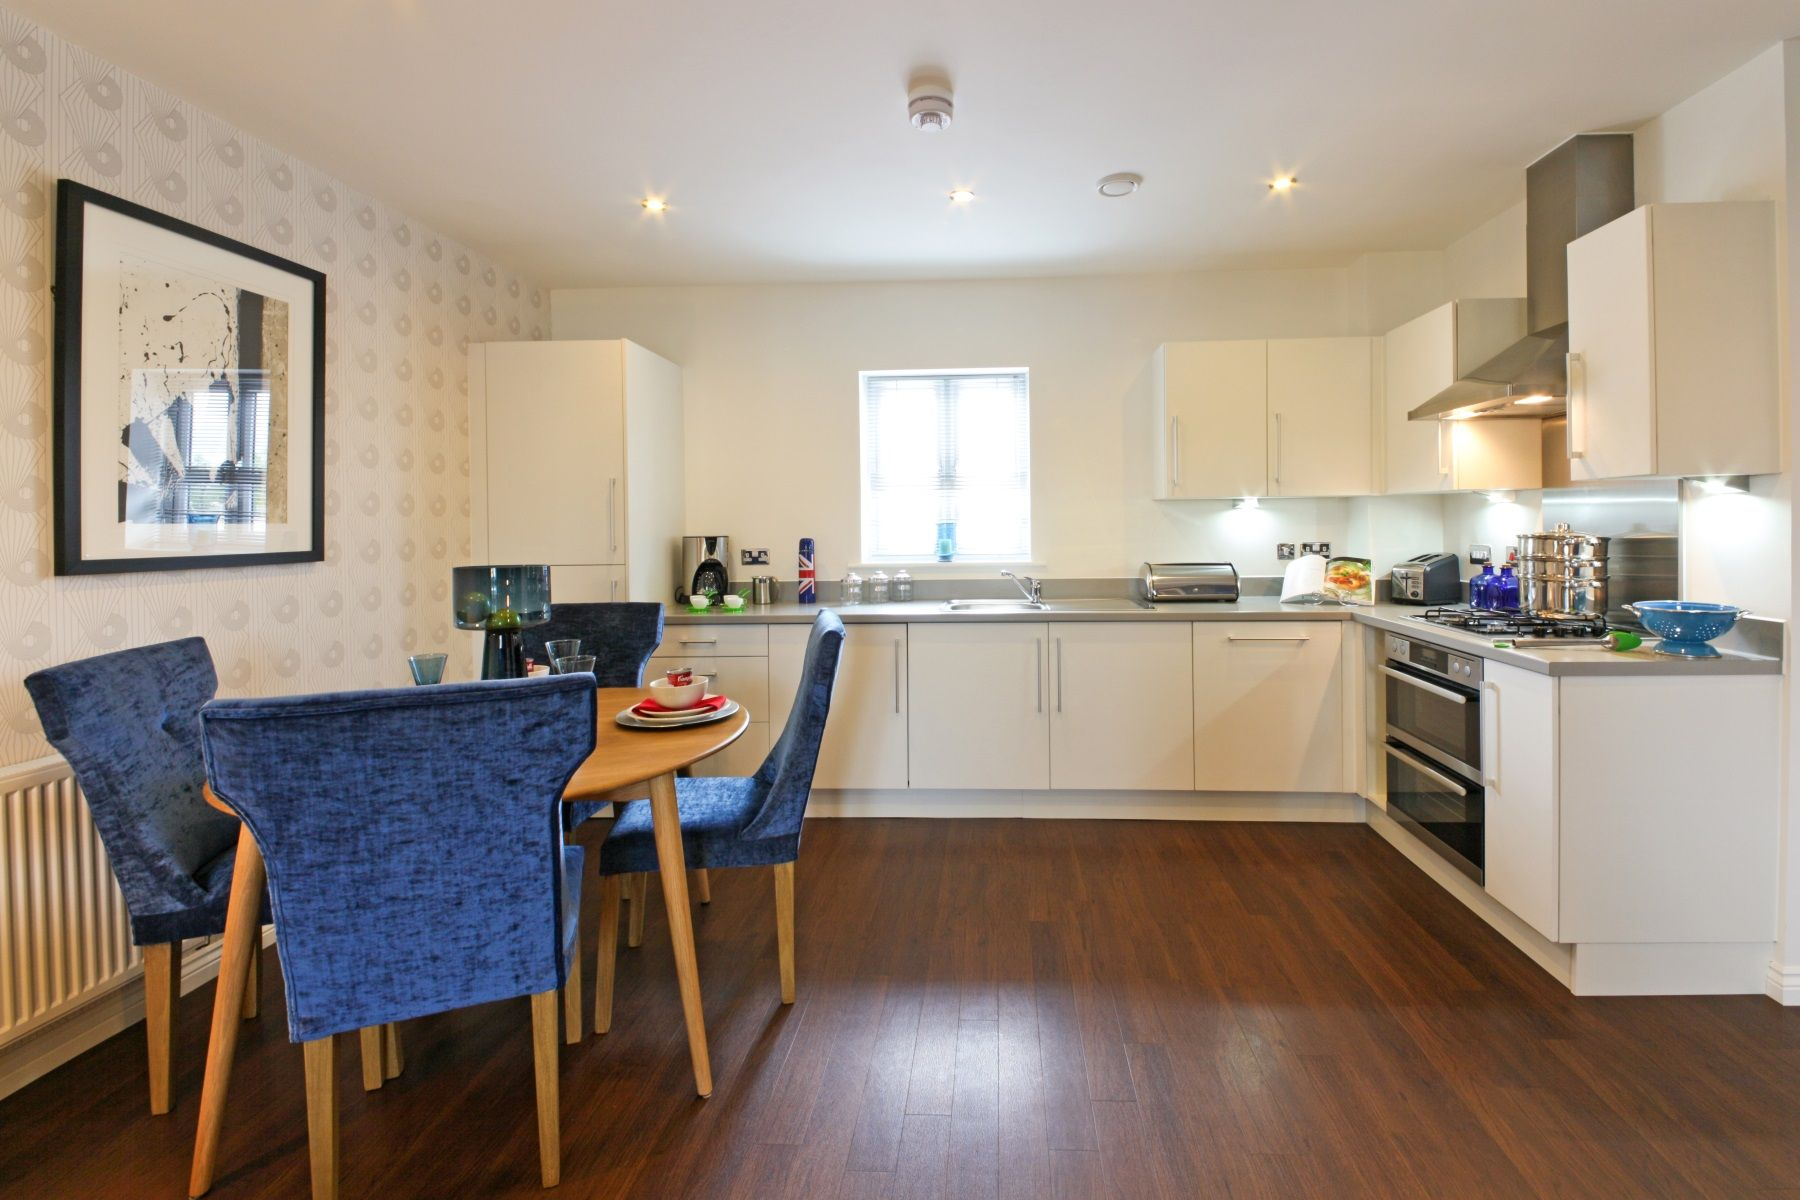 TW Exeter - Cranbrook - Newdale example kitchen 2